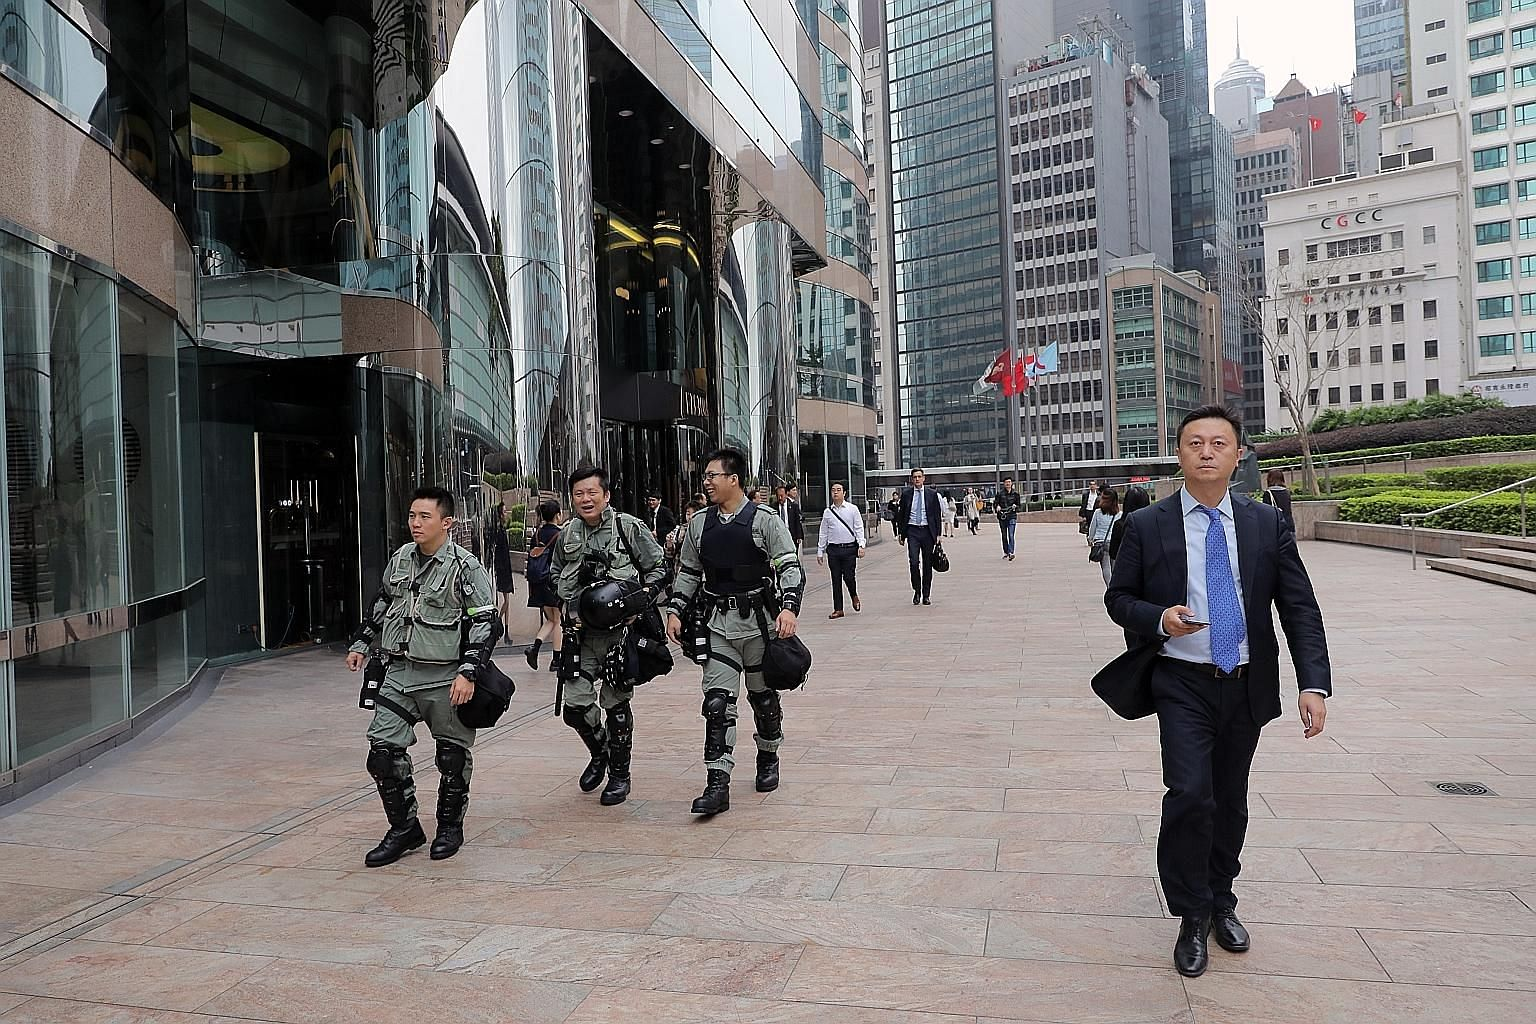 Riot police outside the Exchange Square complex, which houses the Hong Kong Stock Exchange, on Nov 26. The Hong Kong government expects to run a rare budget deficit this fiscal year, amid months of political unrest, as the cost of its fiscal measures